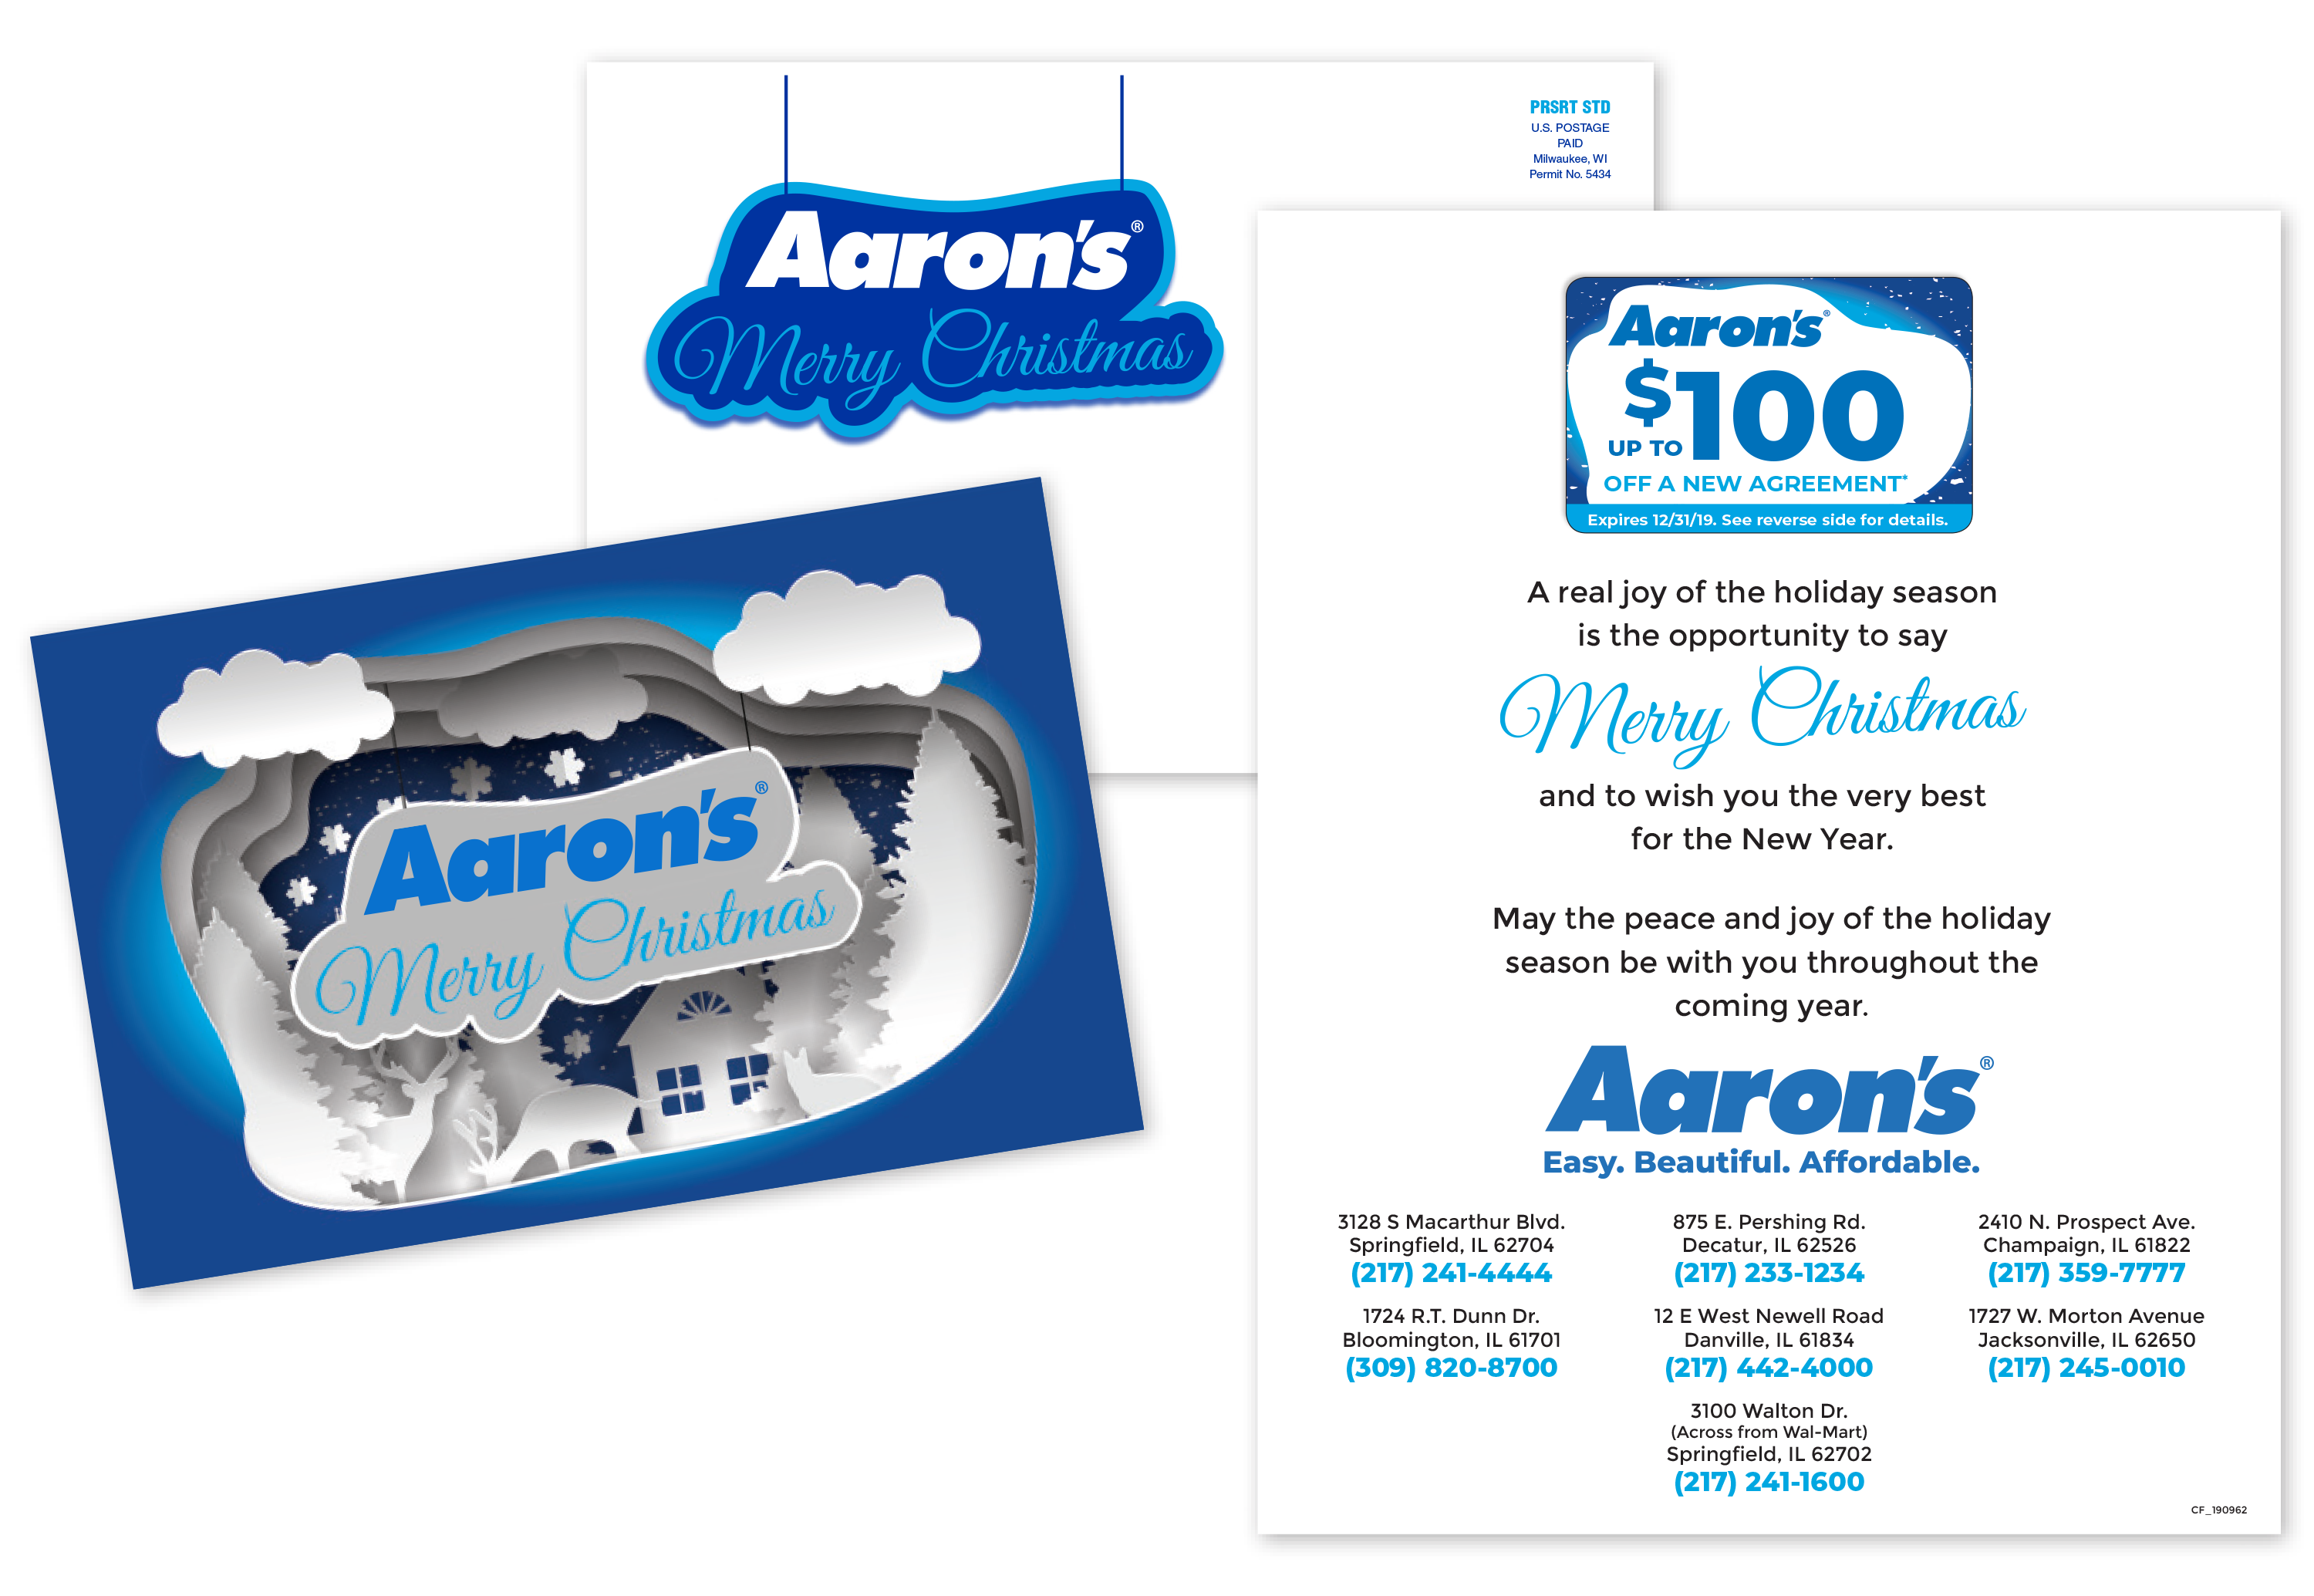 Aaron's Merry Christmas personalized postcards